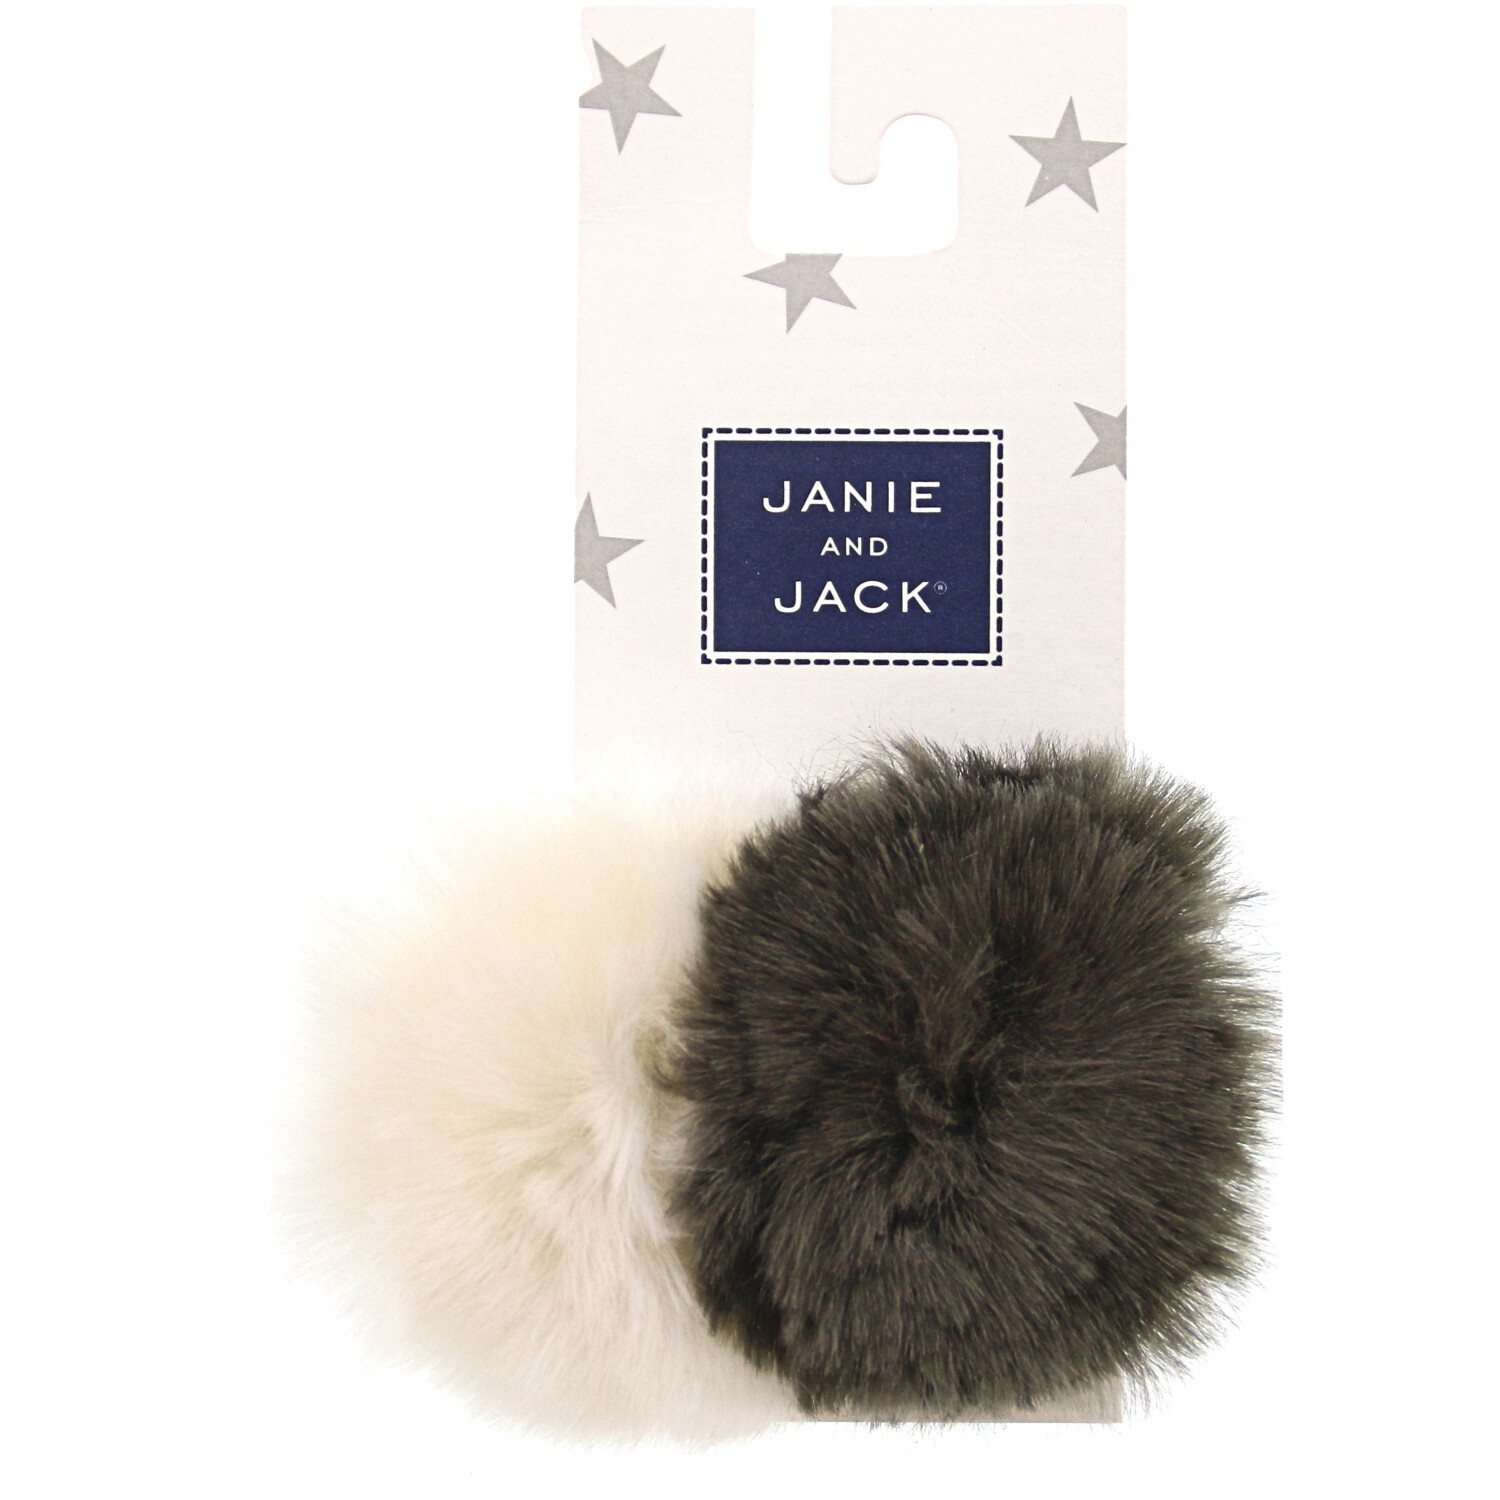 Janie And Jack Pom Barrette - One Size - Grey / White